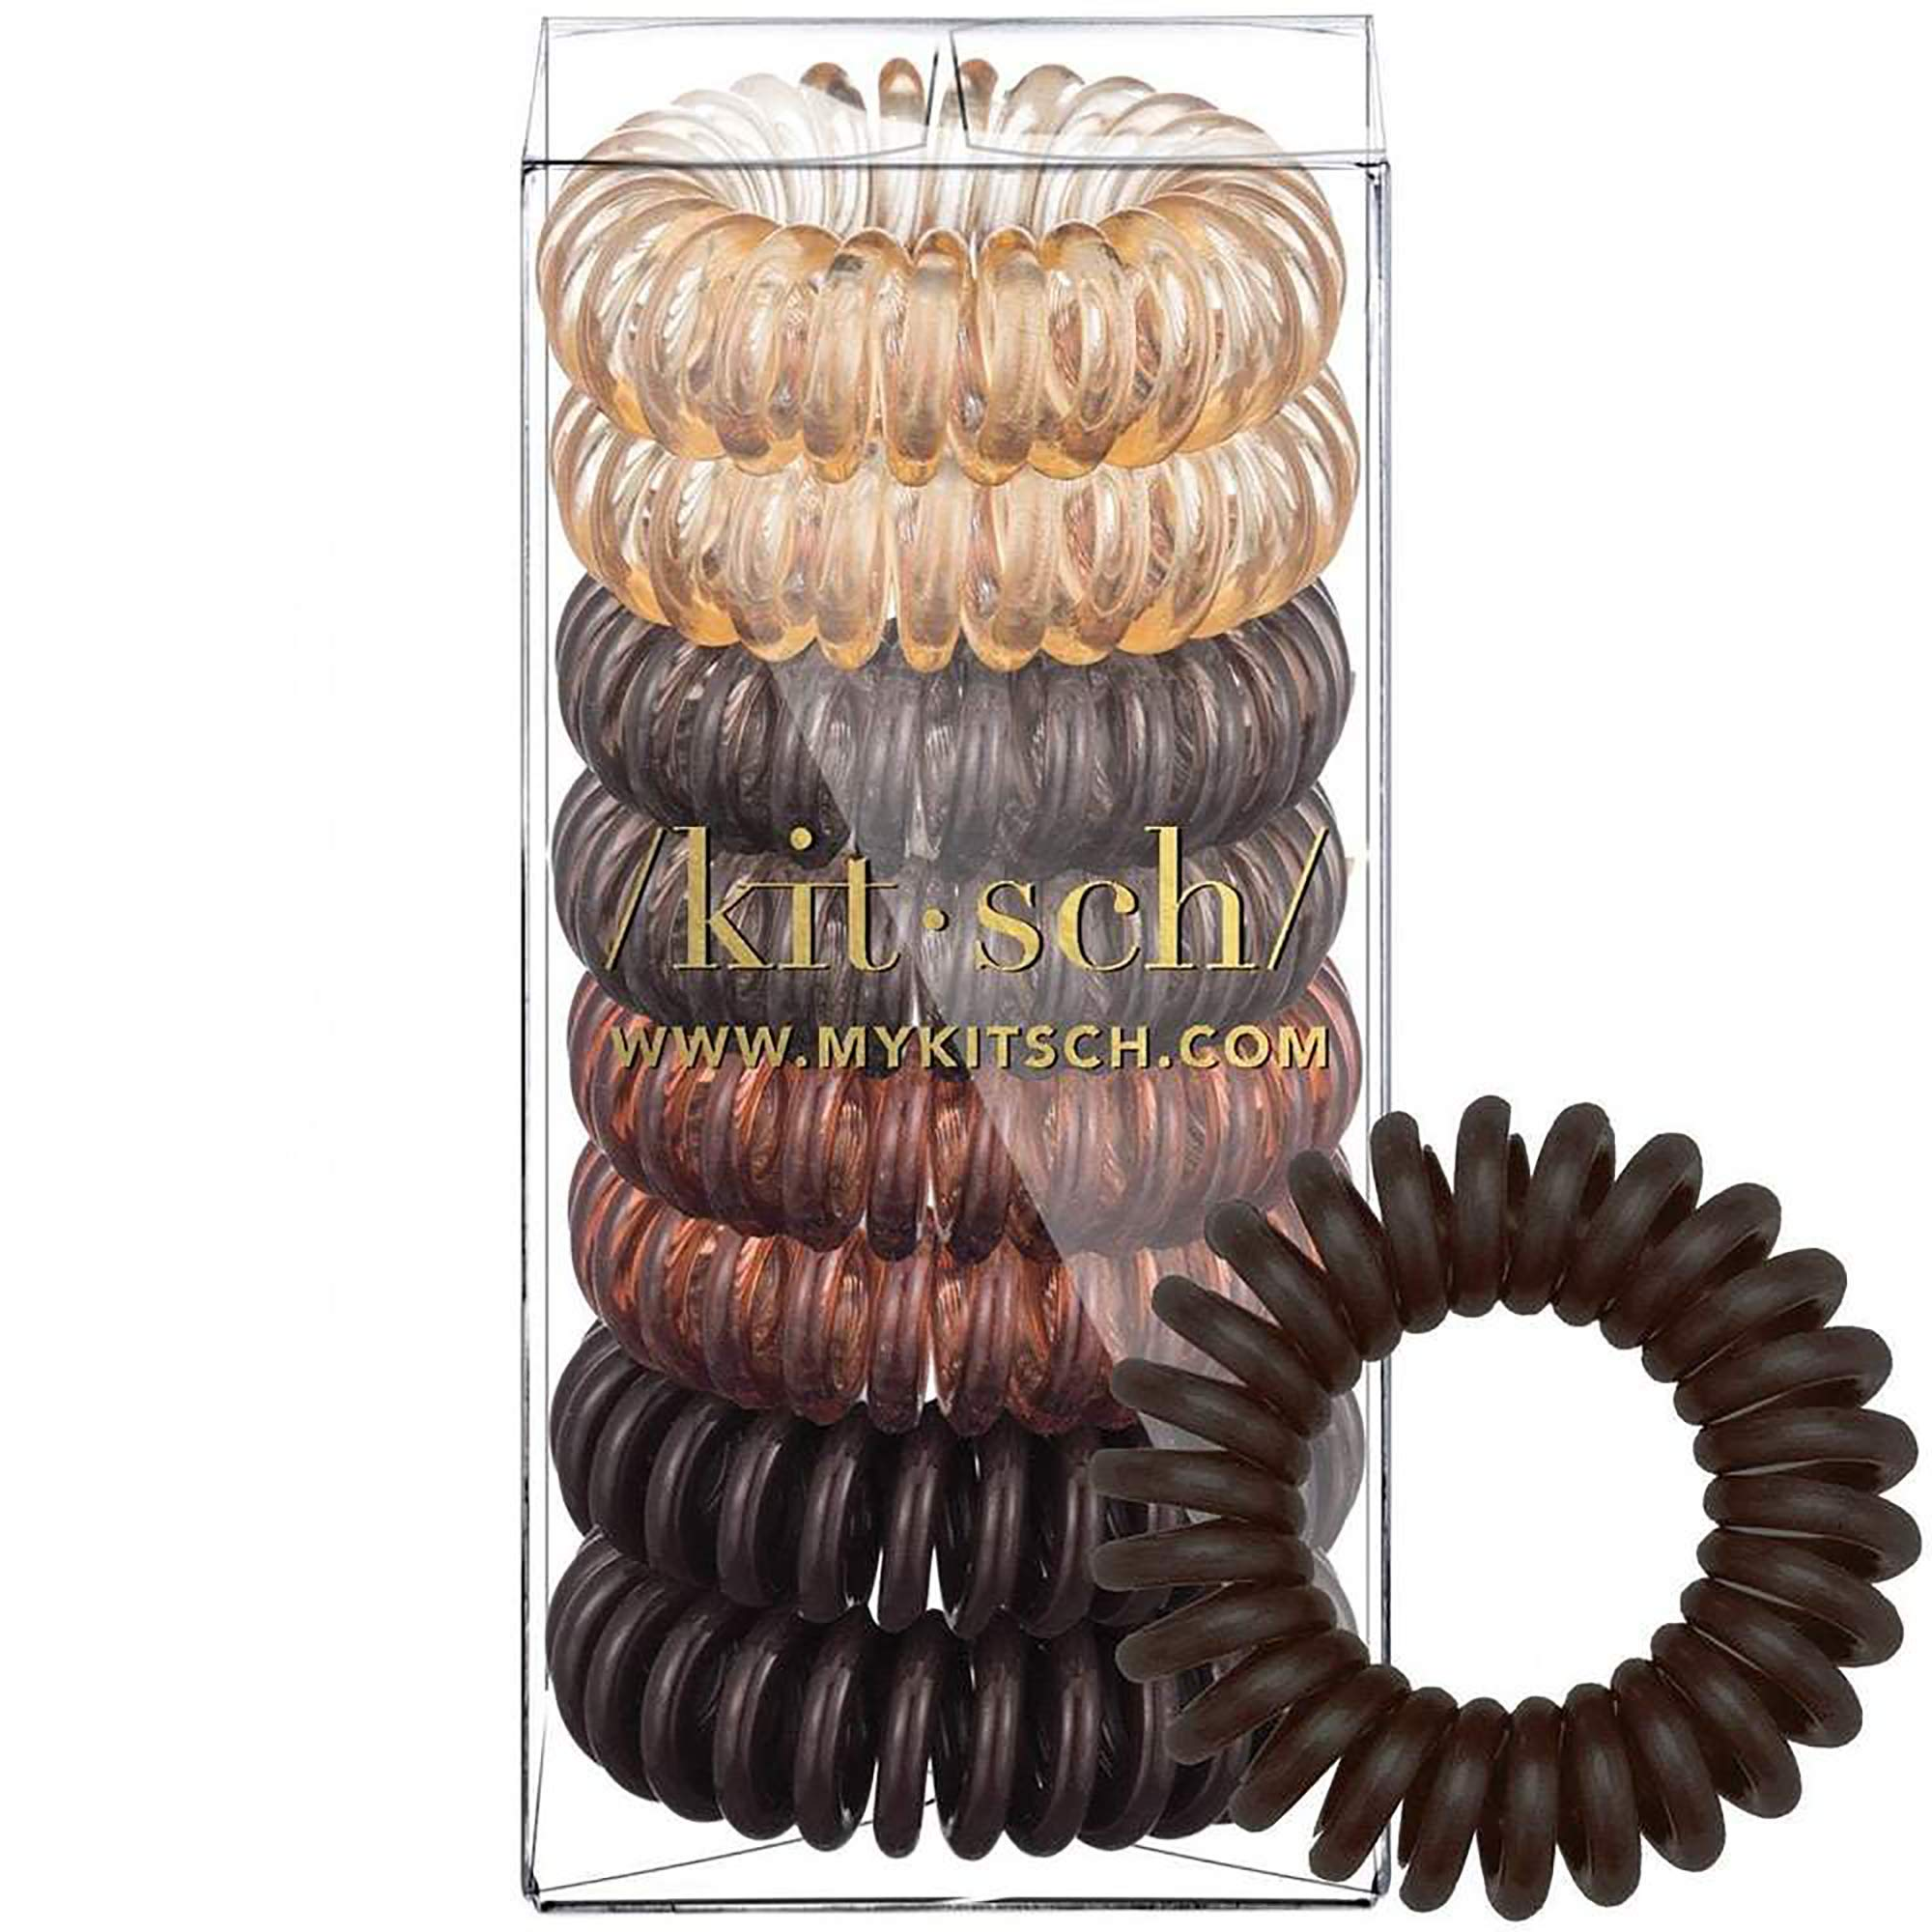 Kitsch Spiral Hair Ties, Coil Hair Ties, Phone Cord Hair Ties, Hair Coils – 8 Pcs, Brunette